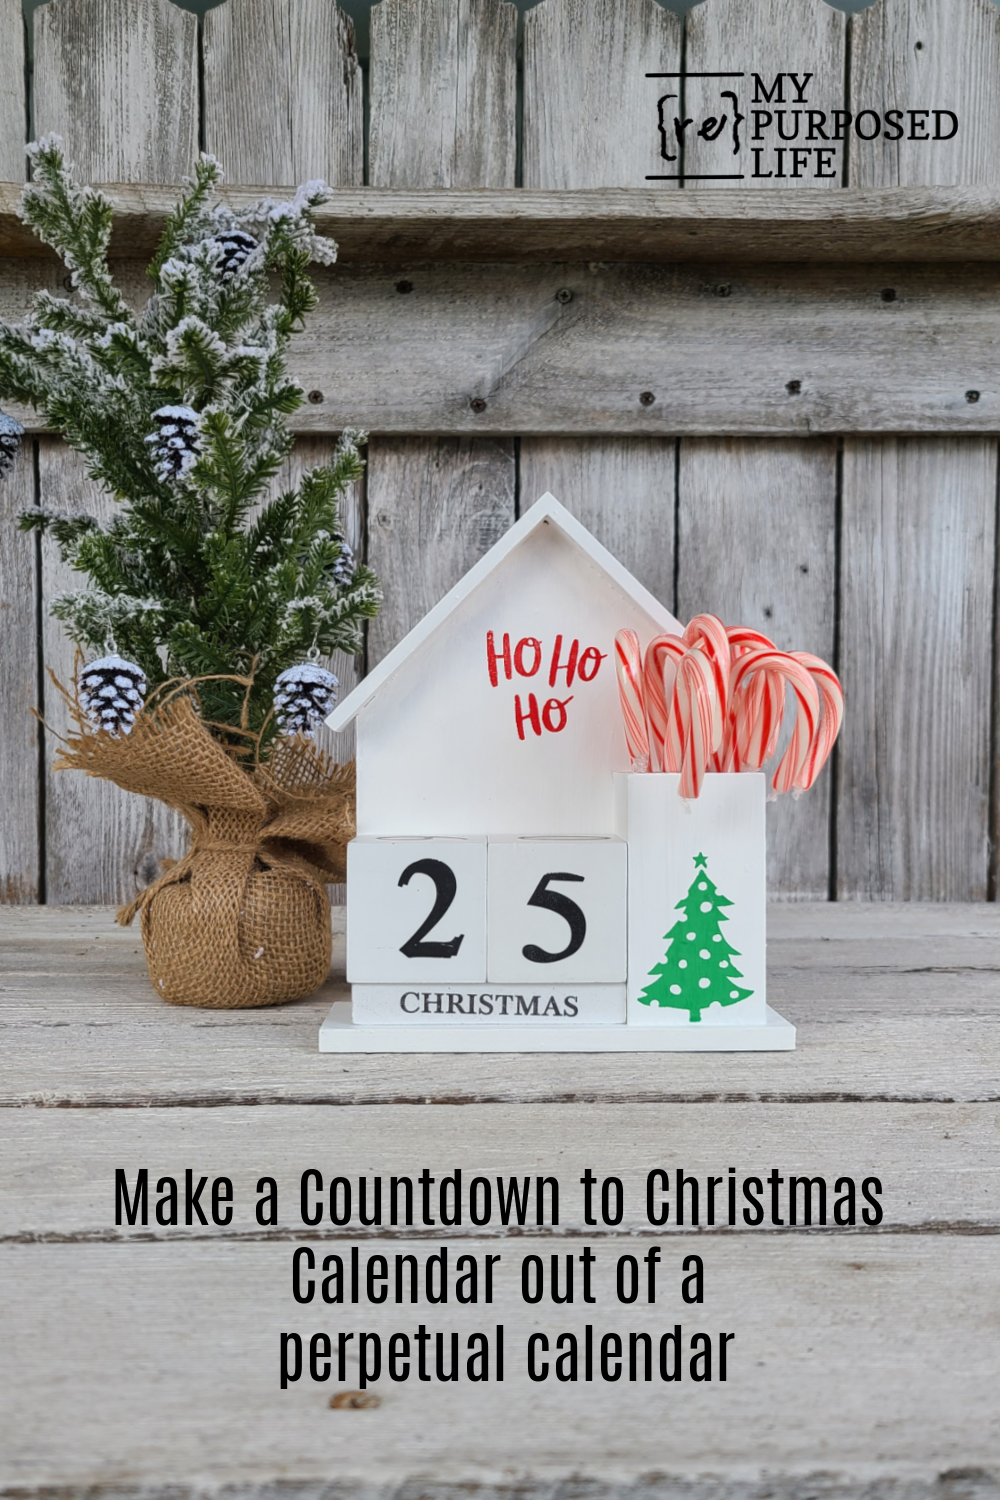 How to turn a perpetual calendar into a countdown to Christmas project. An easy project that the kids could even help with. #MyRepurposedLife #repurposed #Christmas #countdown #calendar #easy via @repurposedlife